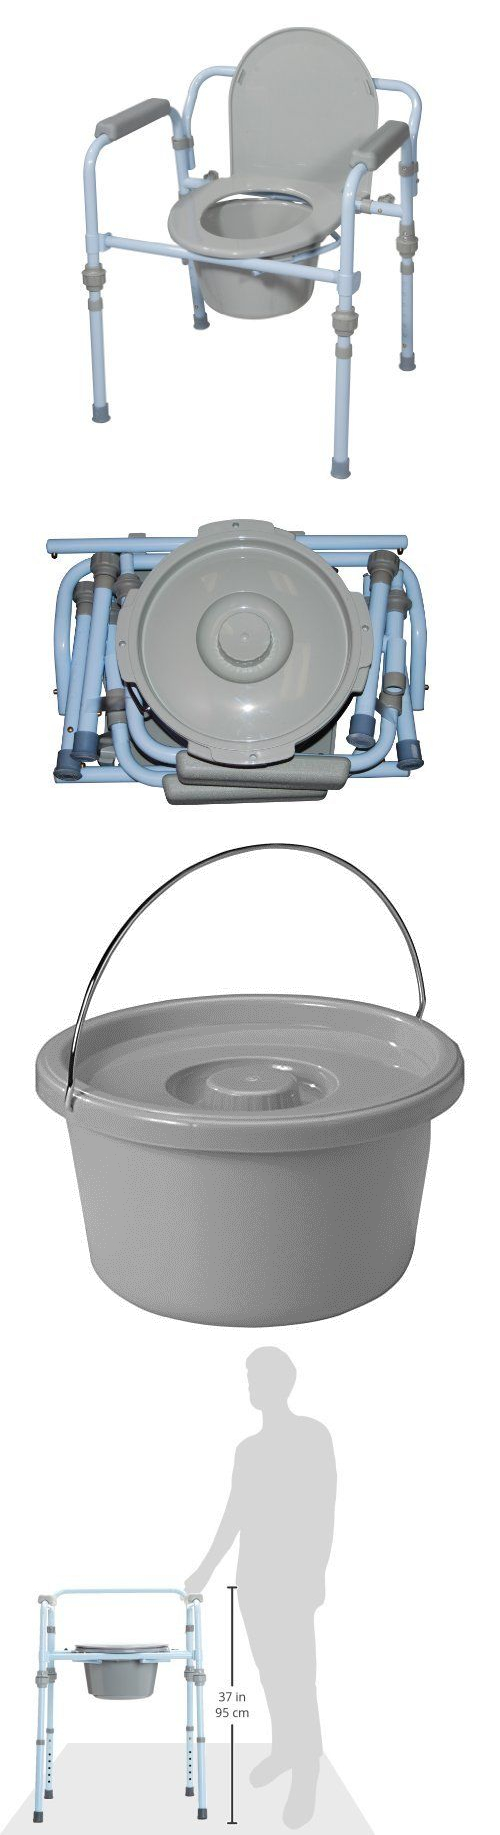 Toilet Frames and Commodes: Adult Potty Chair Bedside Commode ...